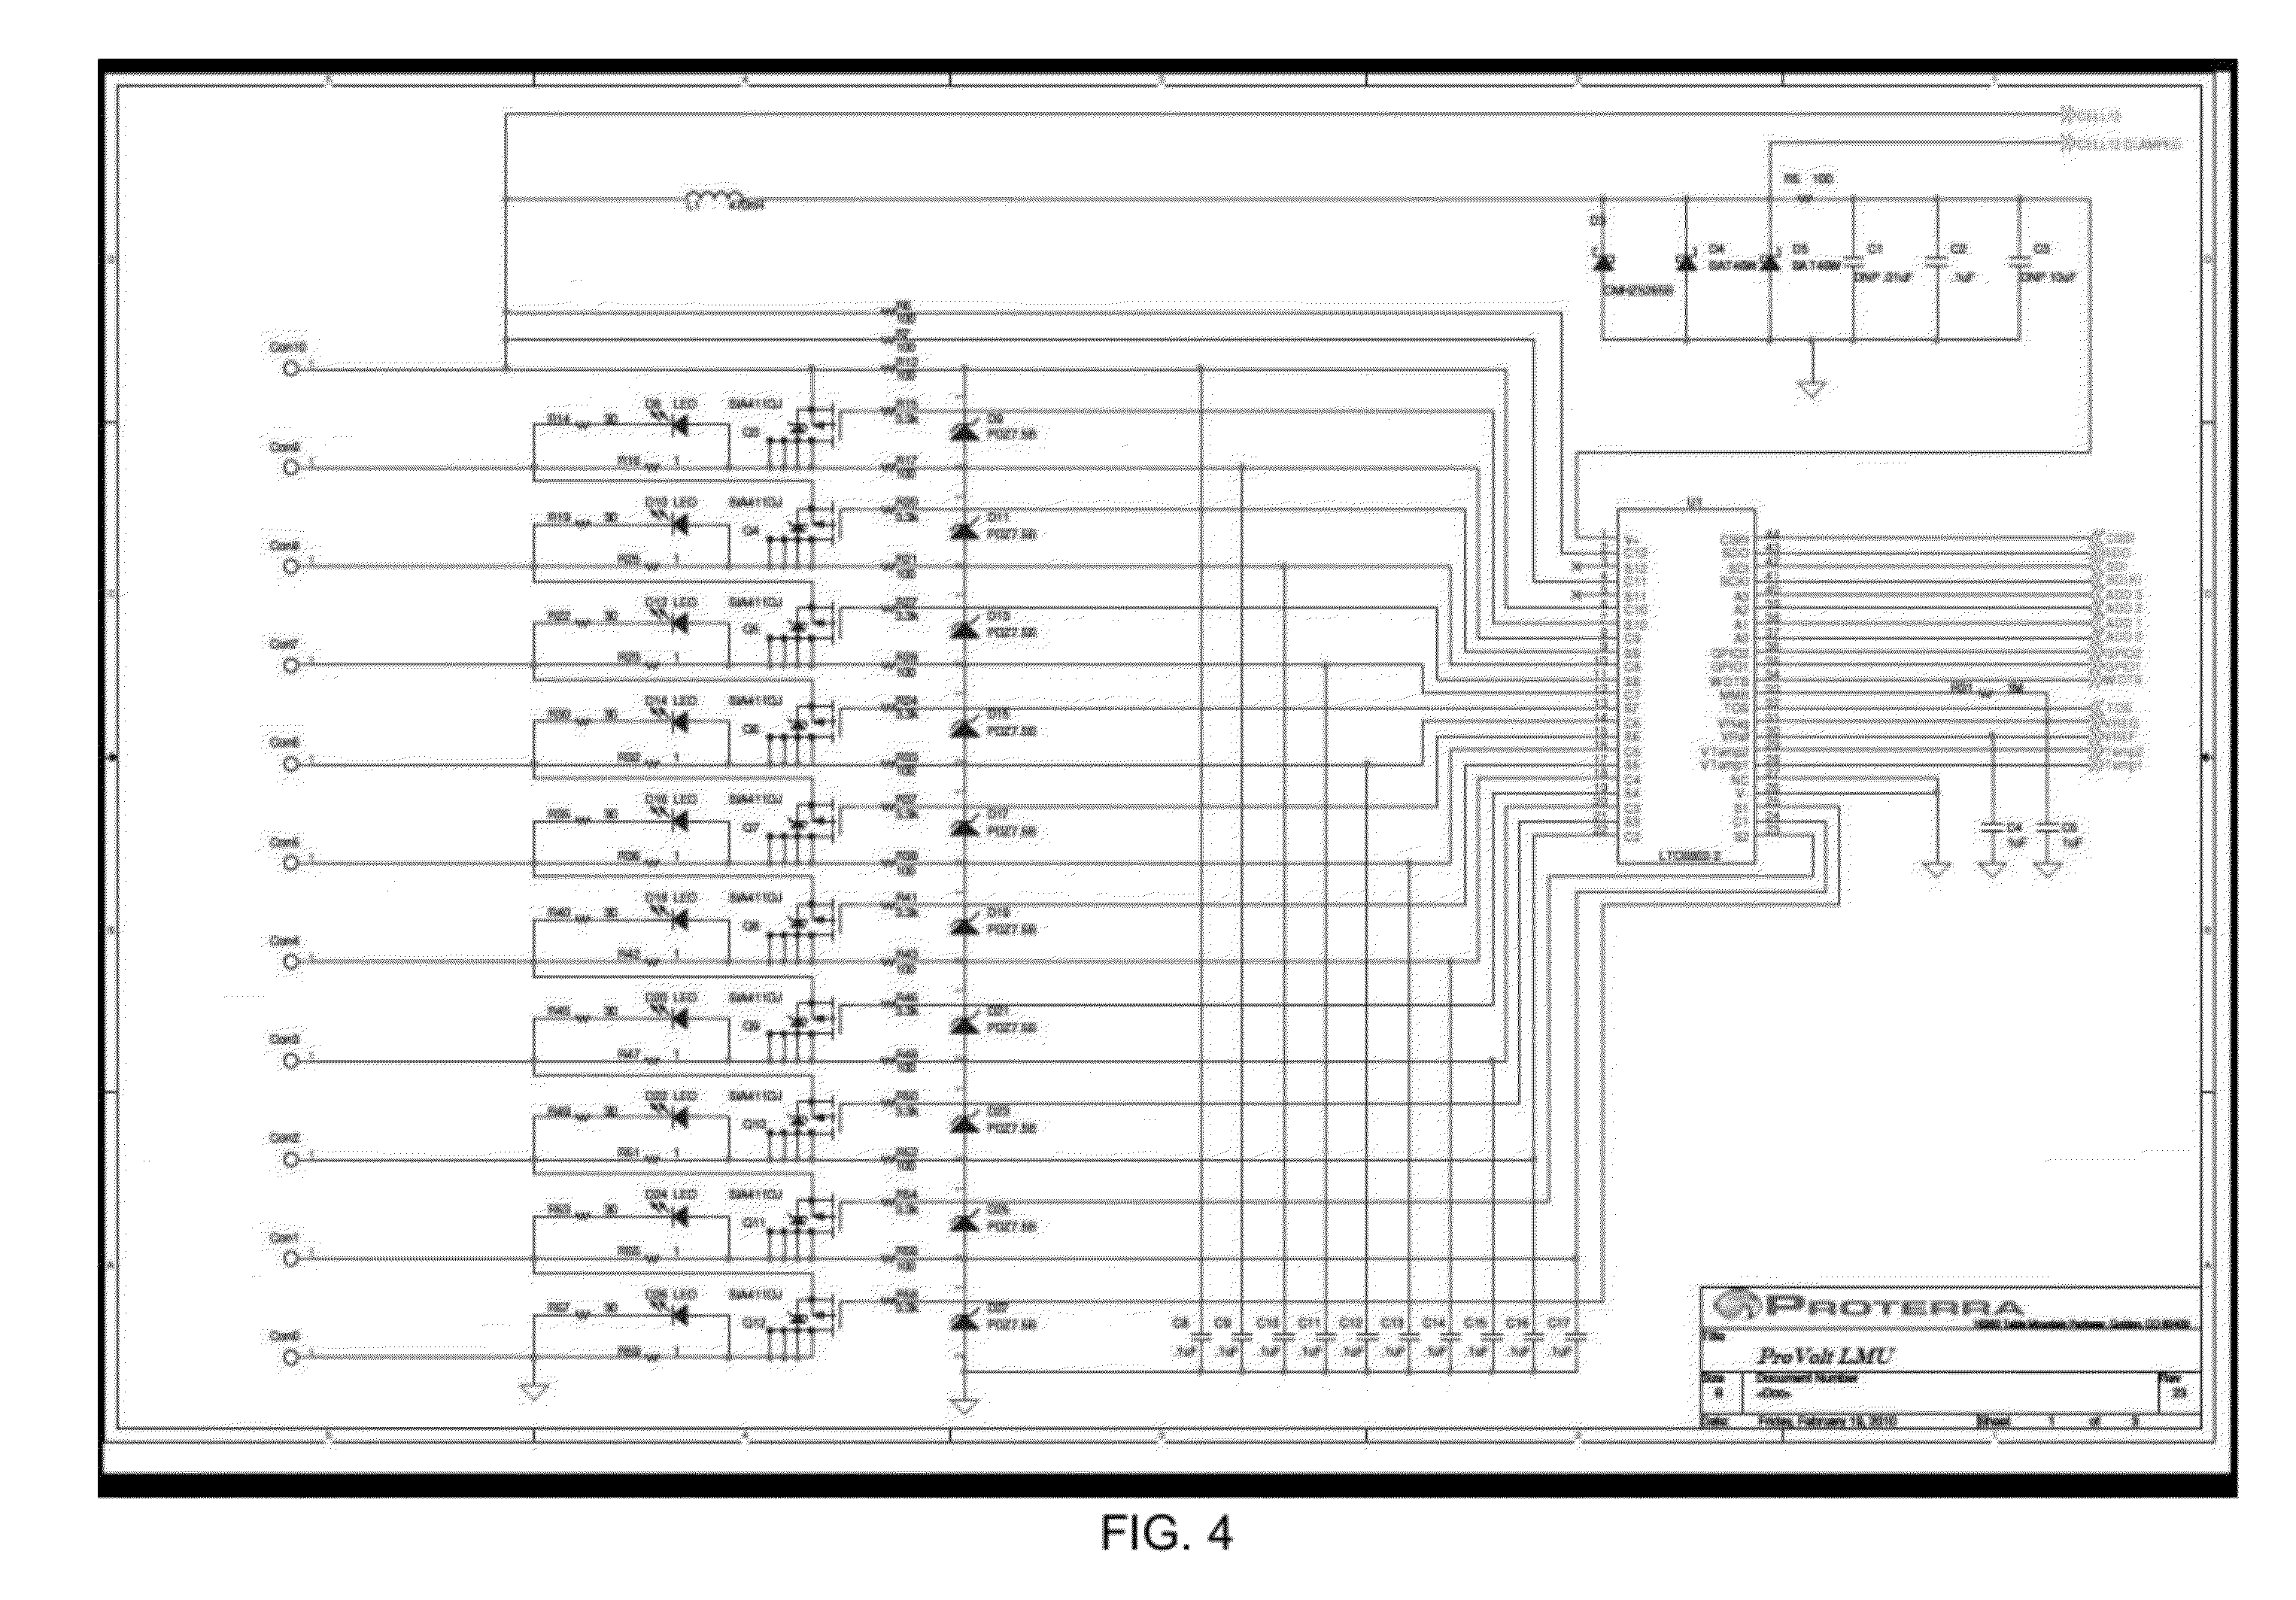 delphi pa66 wiring diagram   26 wiring diagram images